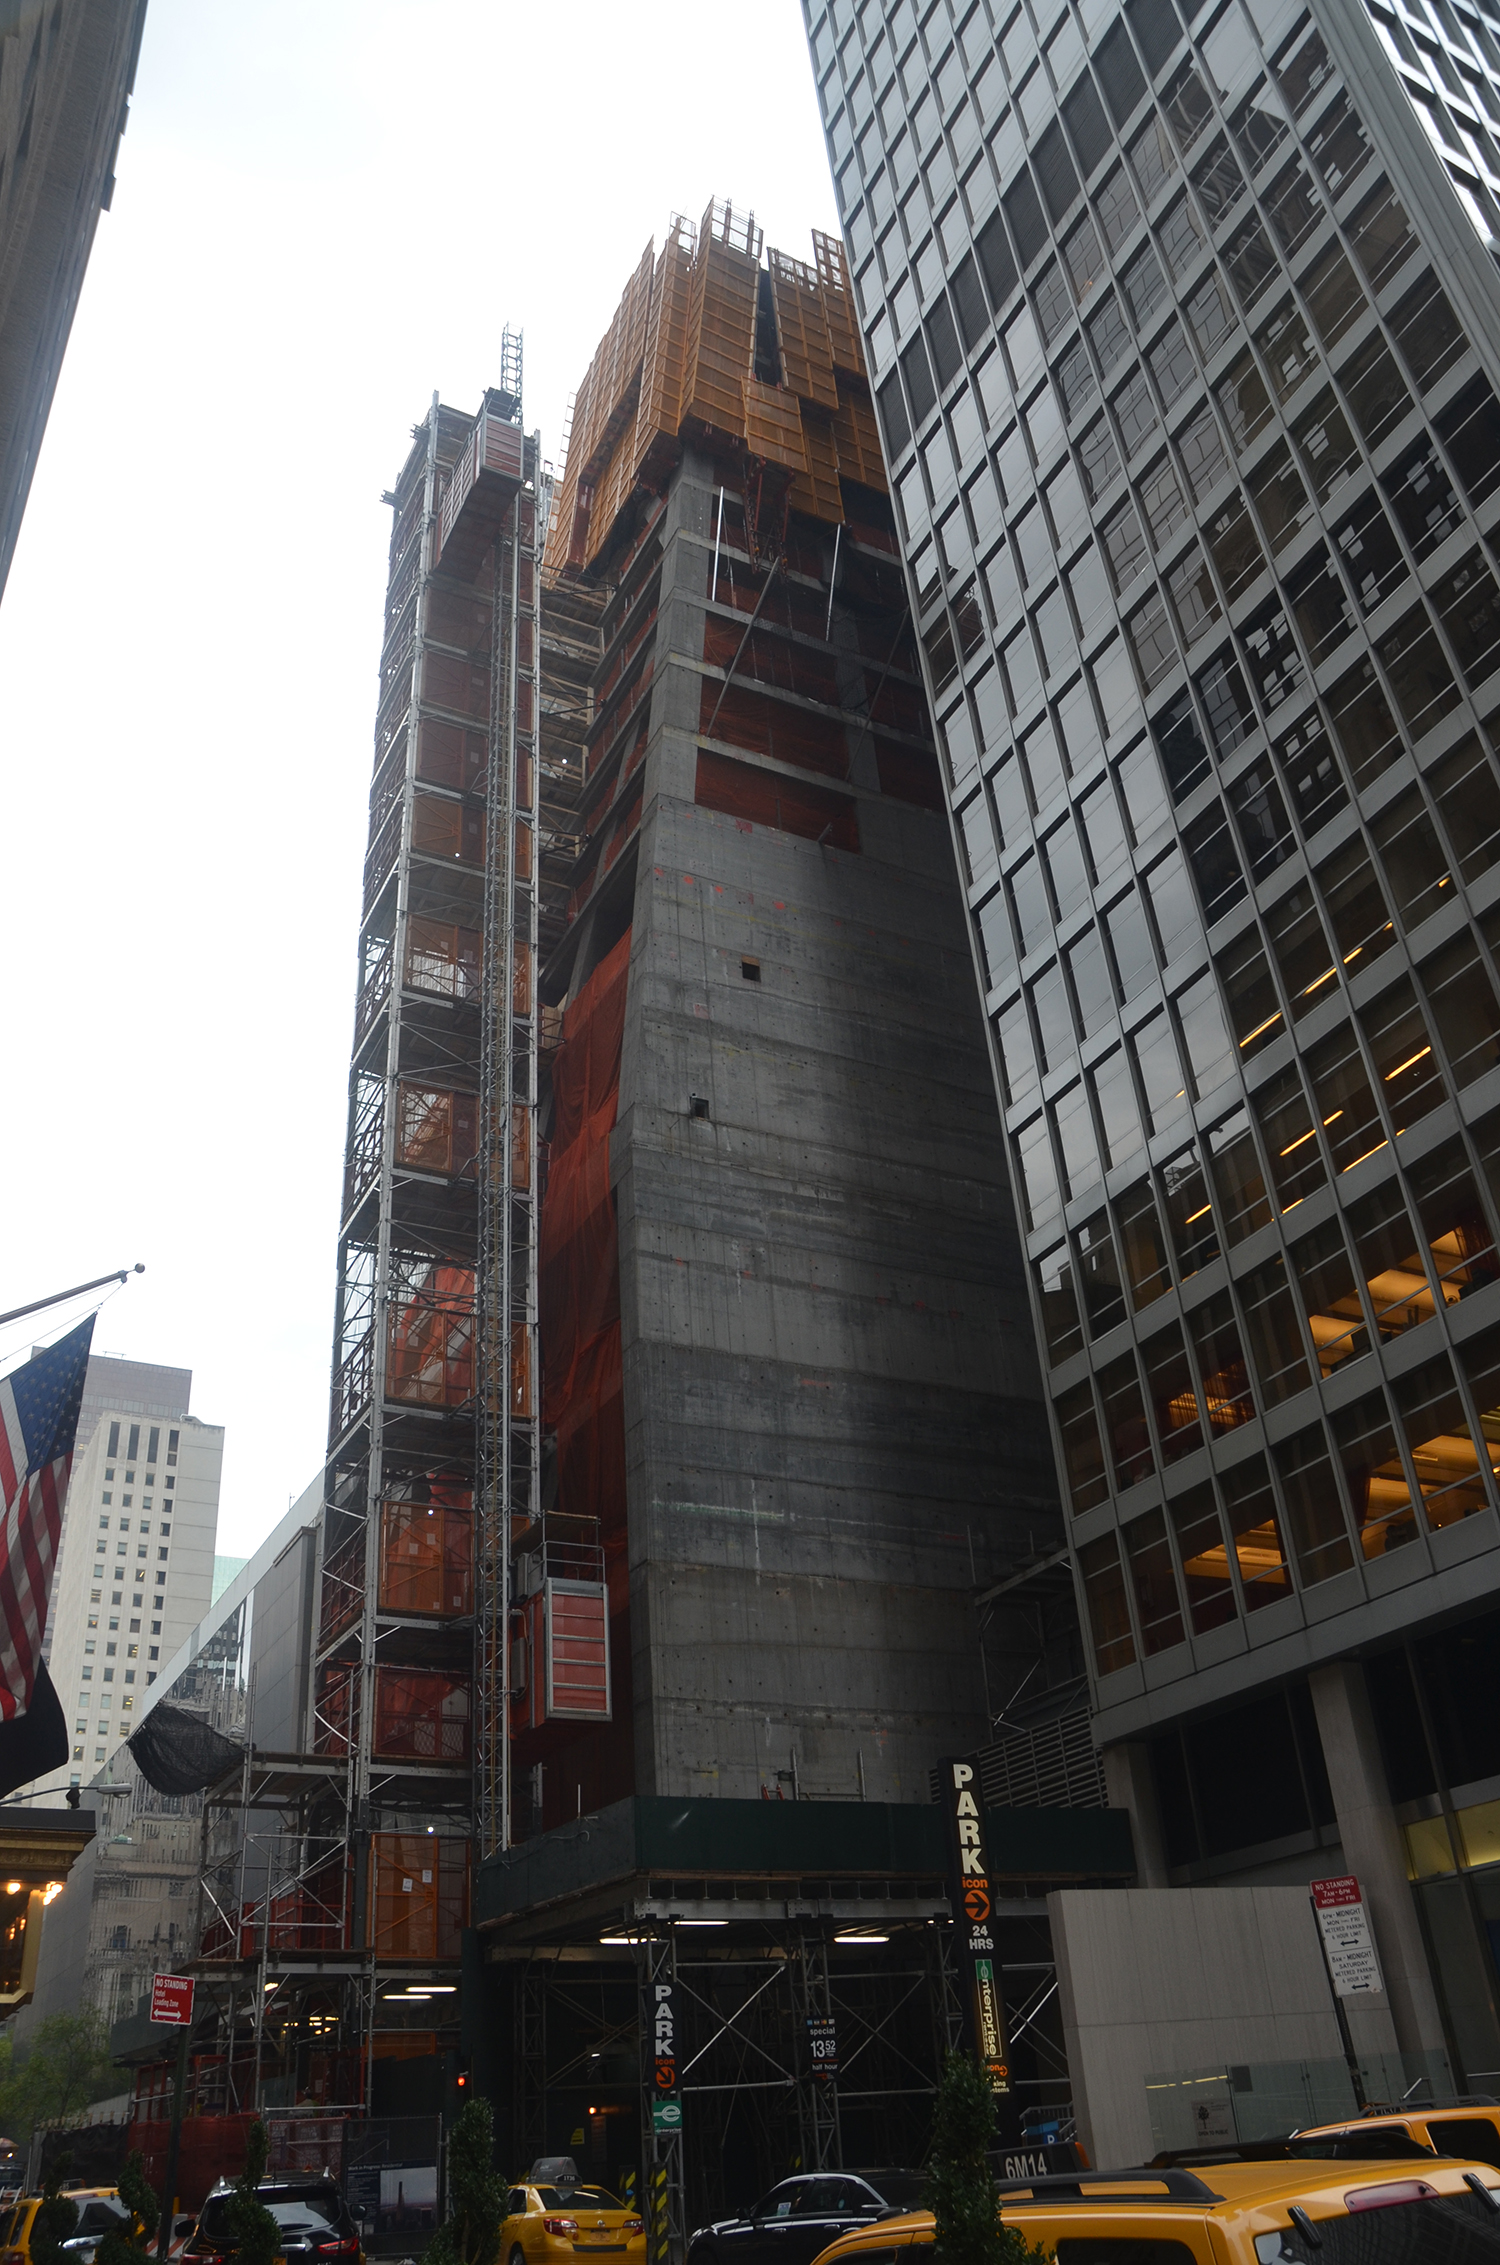 Construction on the West 54th Street side of 53W53